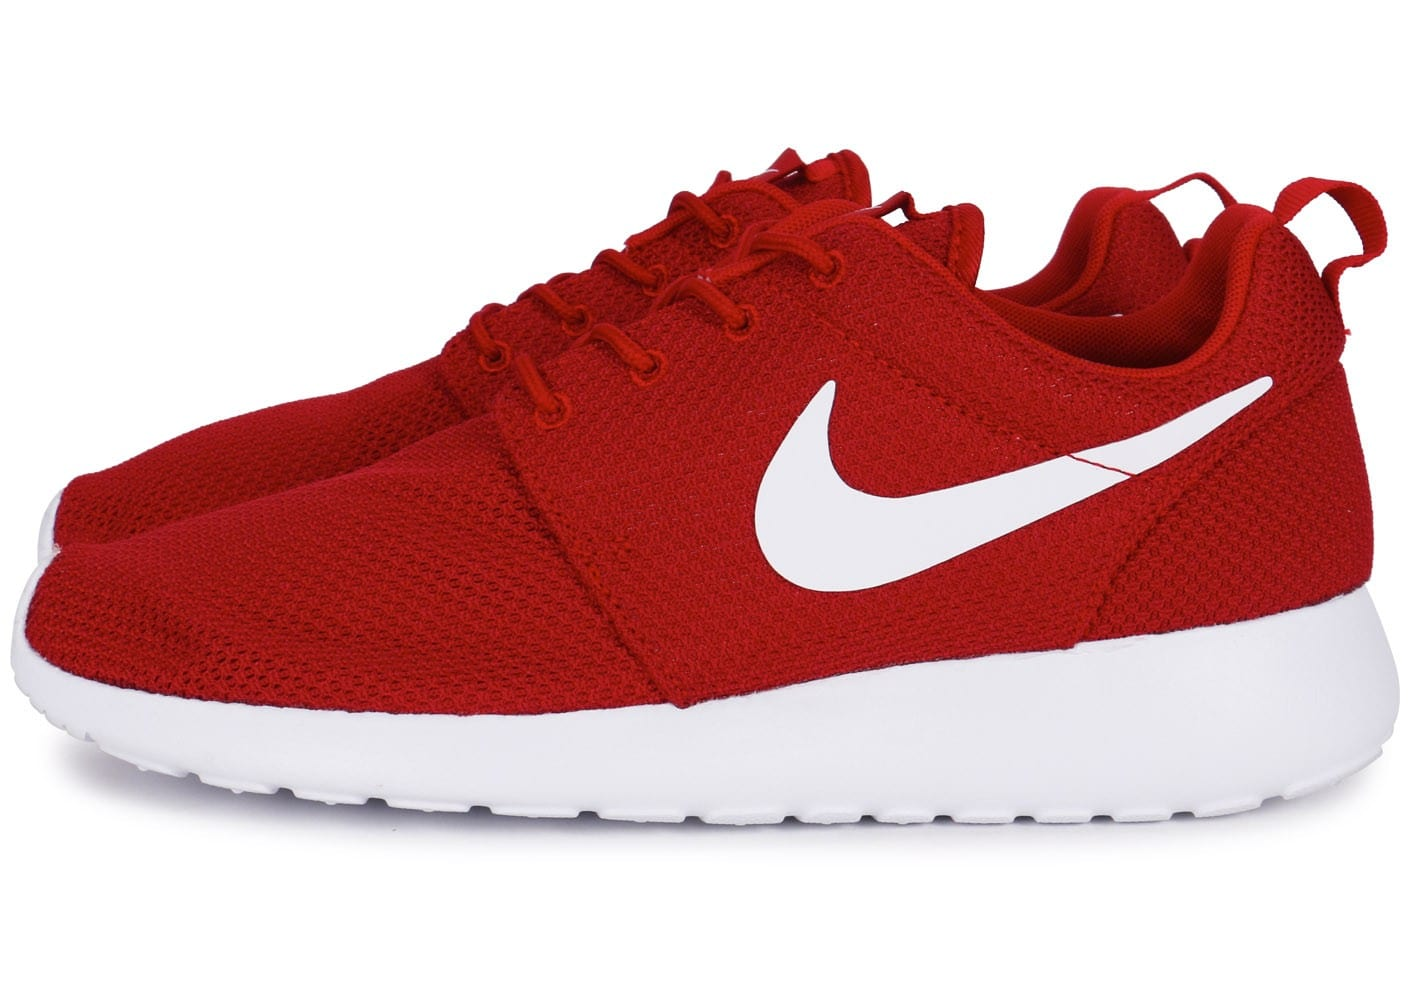 lowest price e6b69 f0989 nike roshe one rouge,Chaussures Nike Roshe One Rouge Et Blanc vue dessous